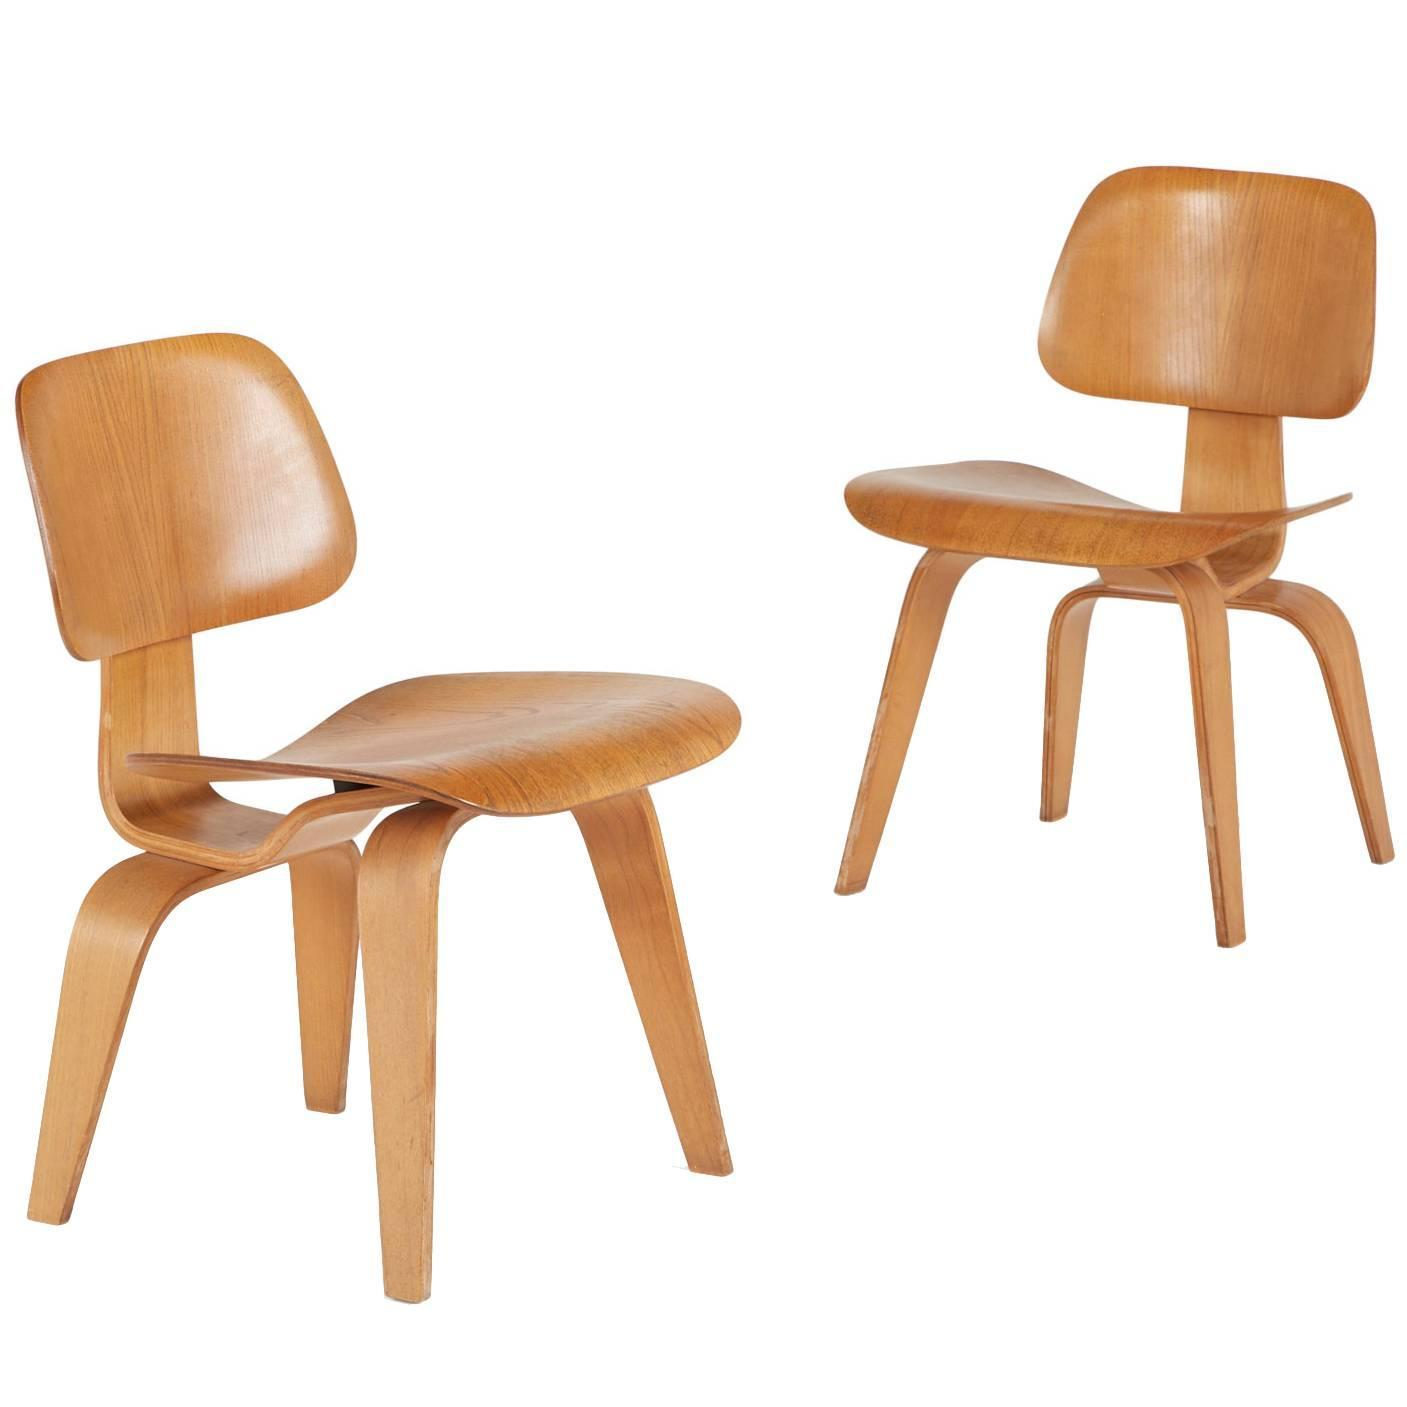 Evans Rare 1940s DCW Molded Plywood Chairs By Charles And Ray Eames At  1stdibs